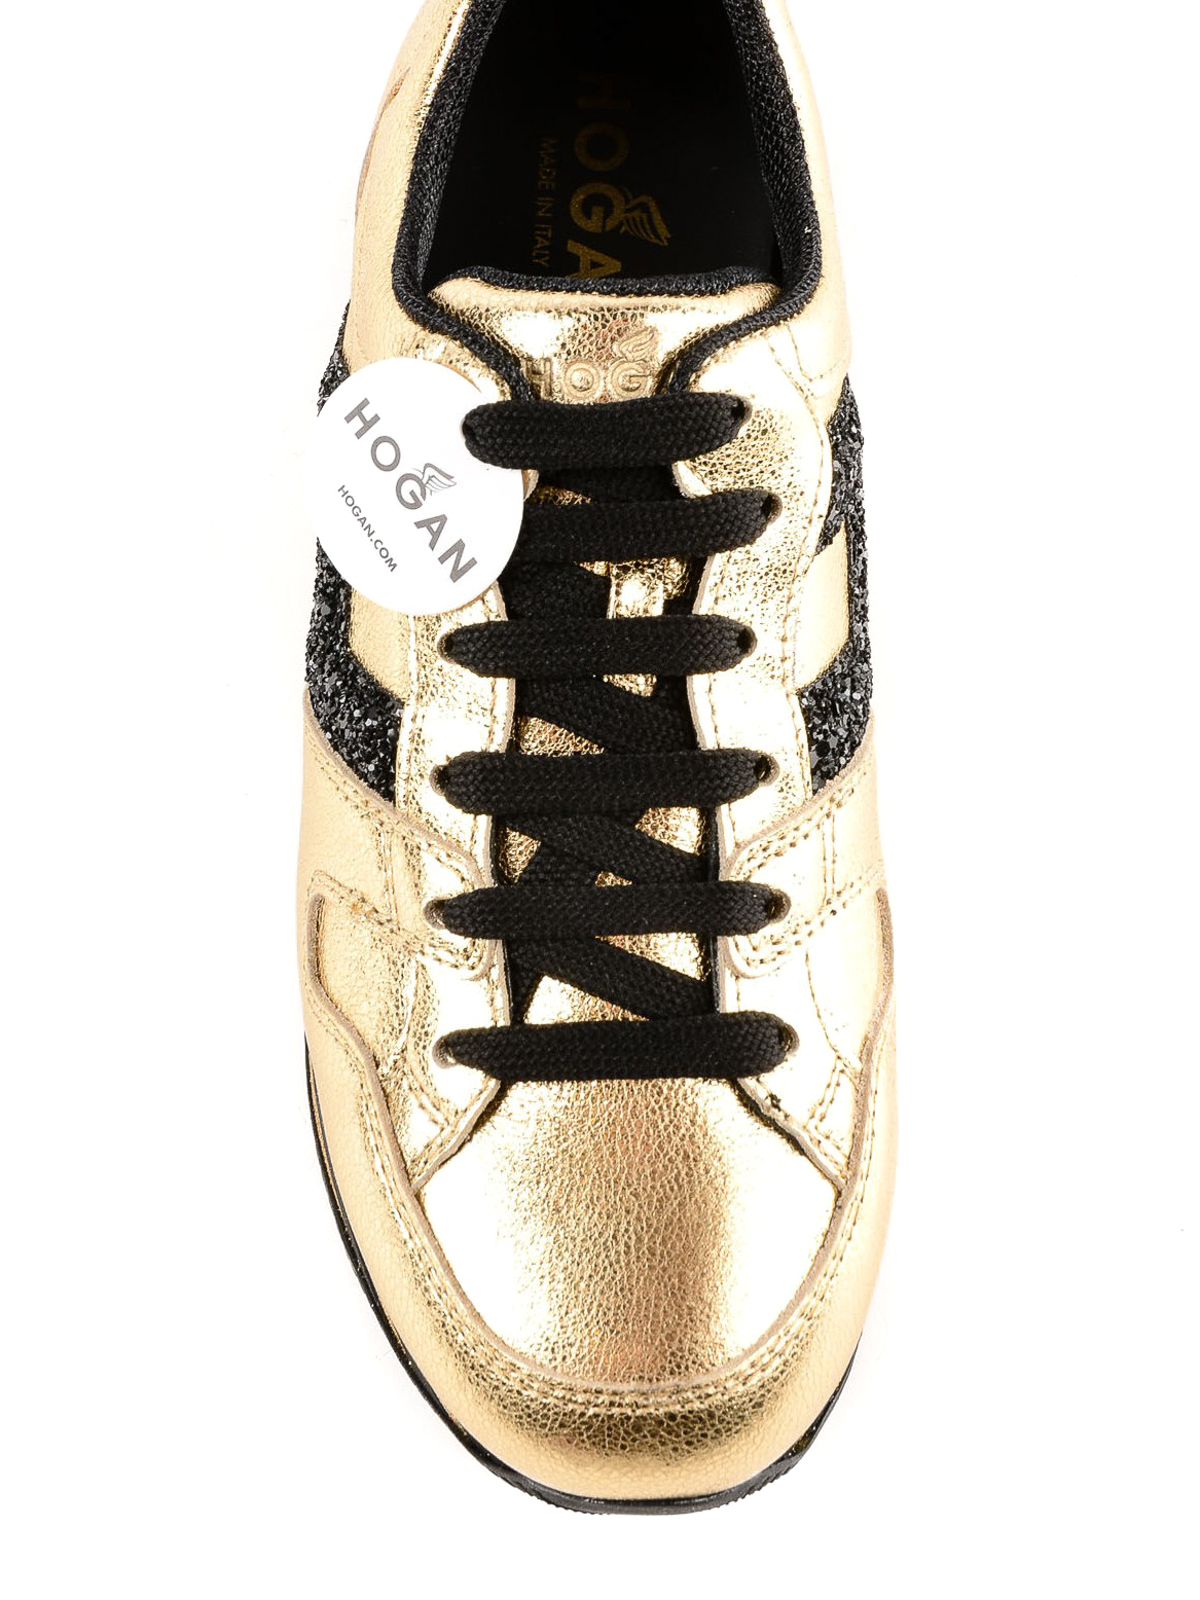 Trainers Hogan - Maxi H222 gold leather sneakers - HXW3680T548JHD417D